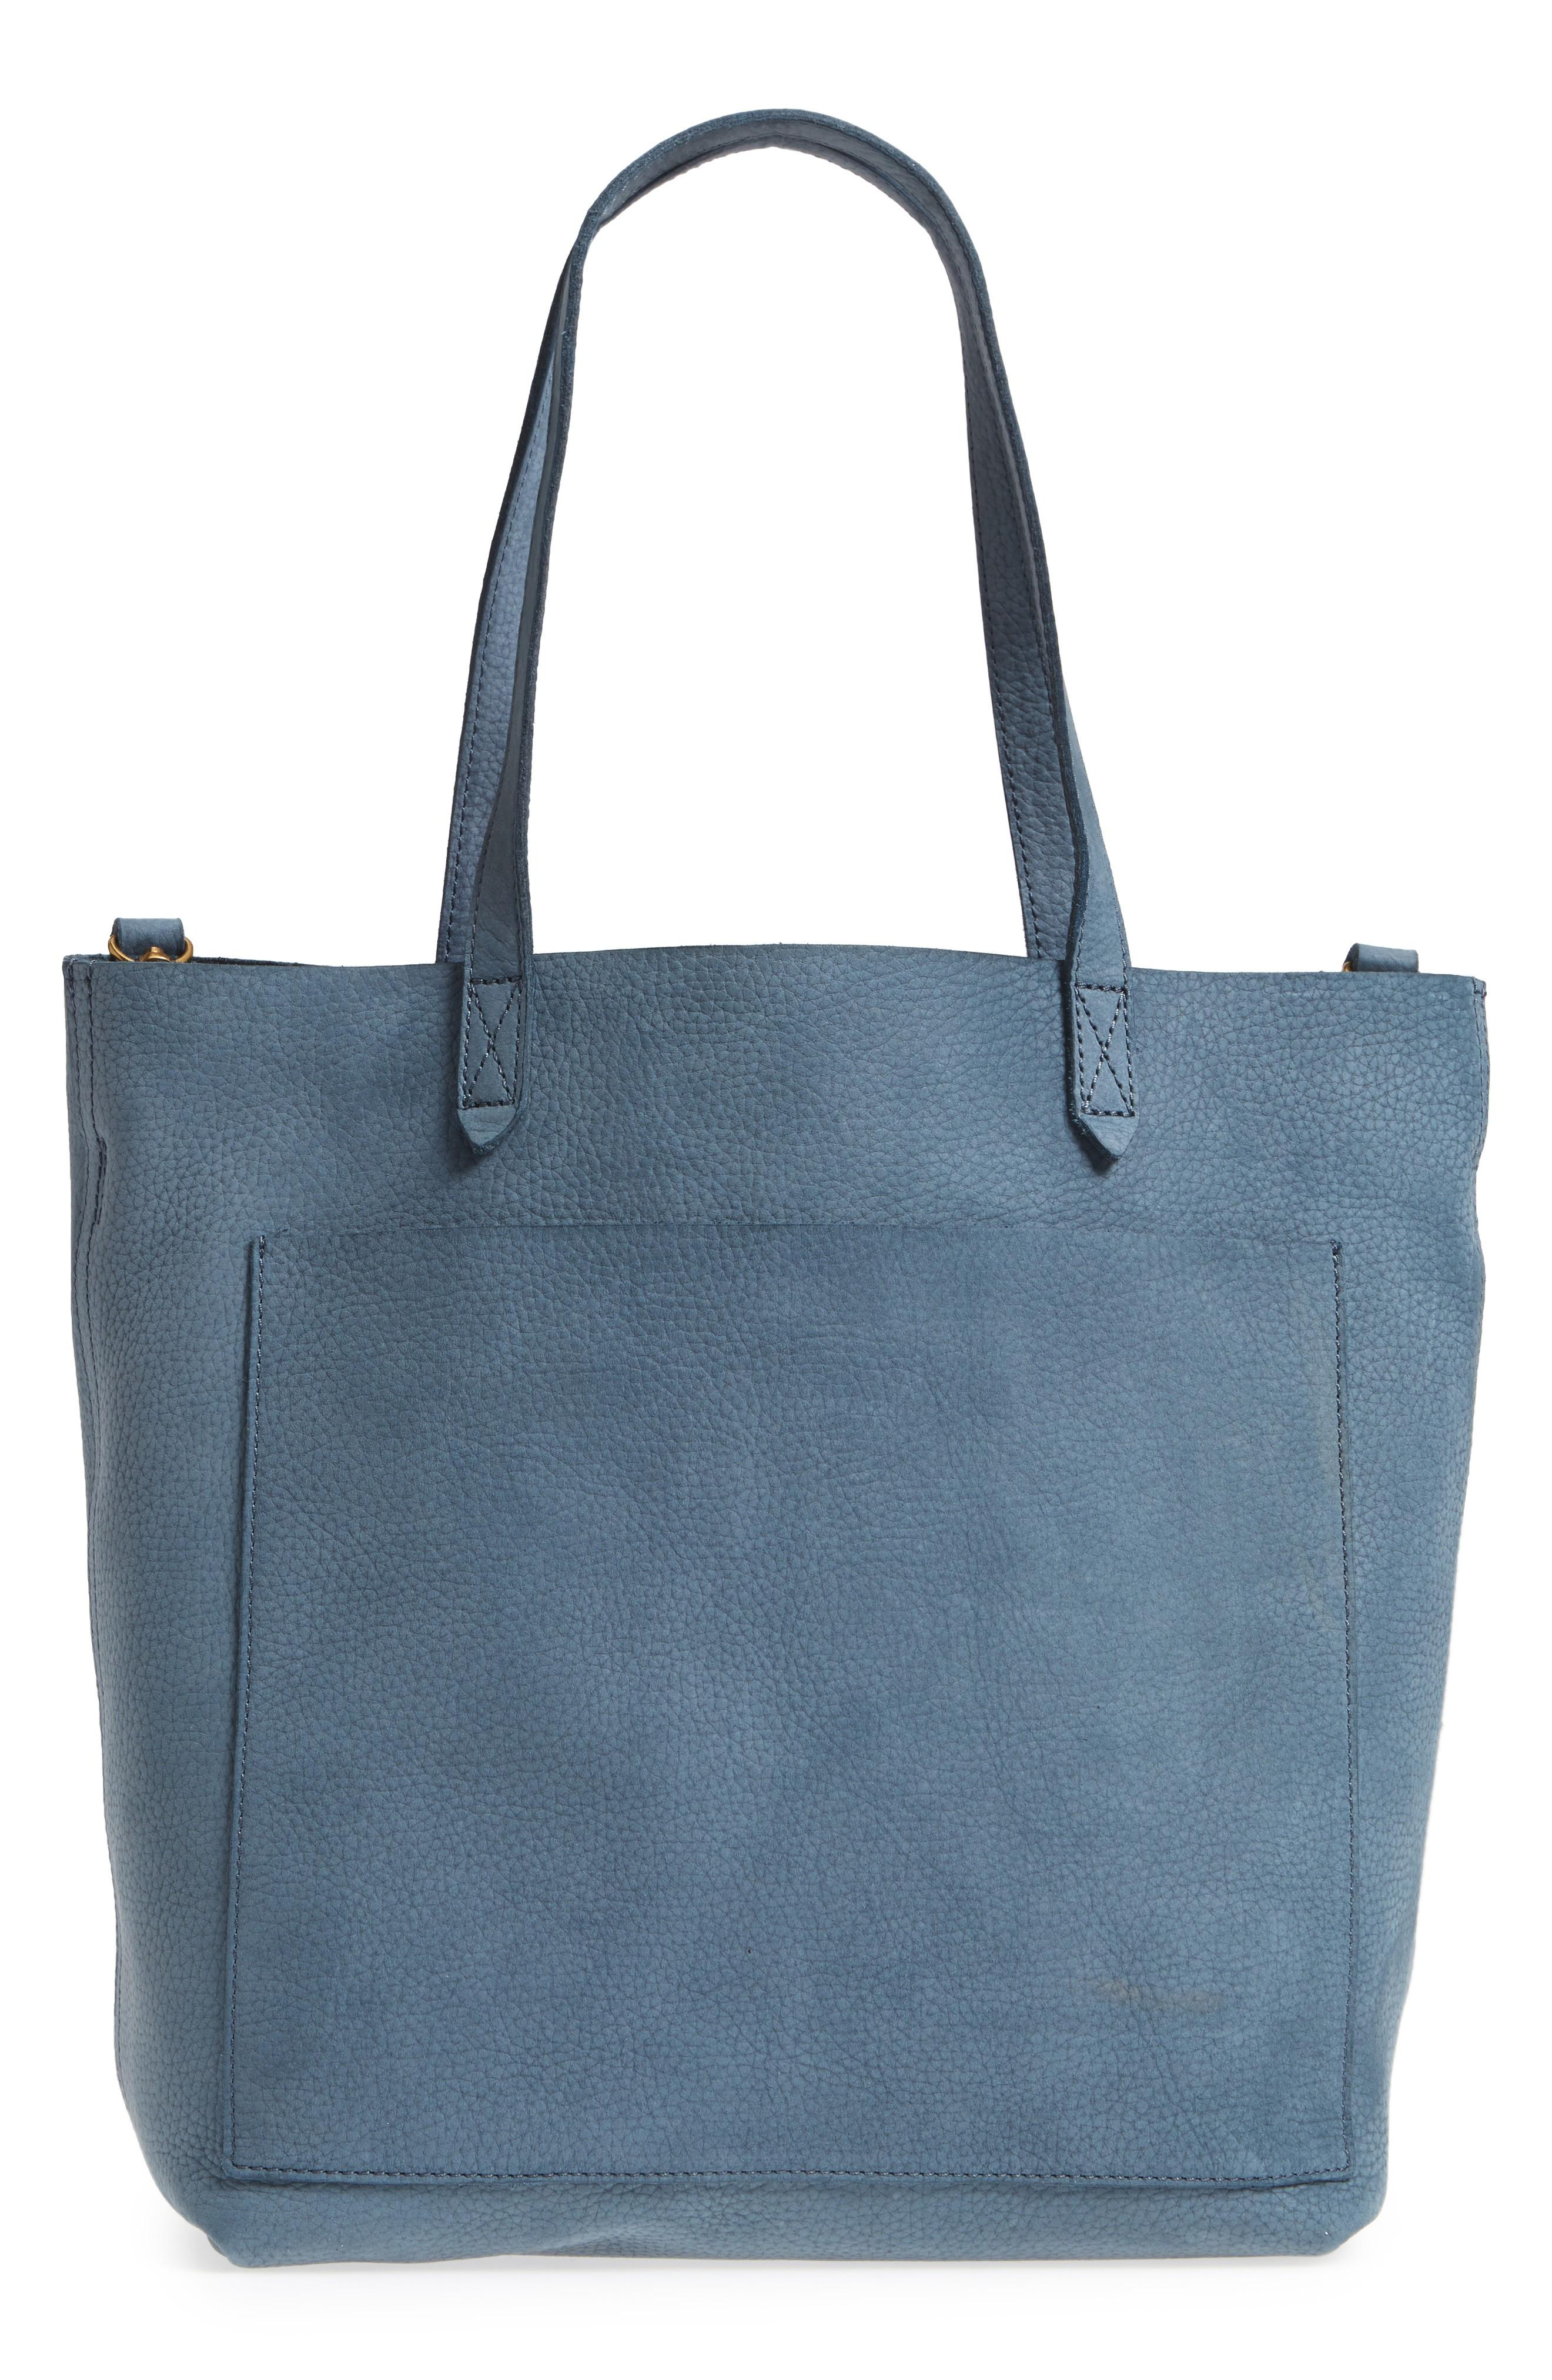 75a5ebb05 Madewell Medium Leather Transport Tote - Blue In Deep River | ModeSens